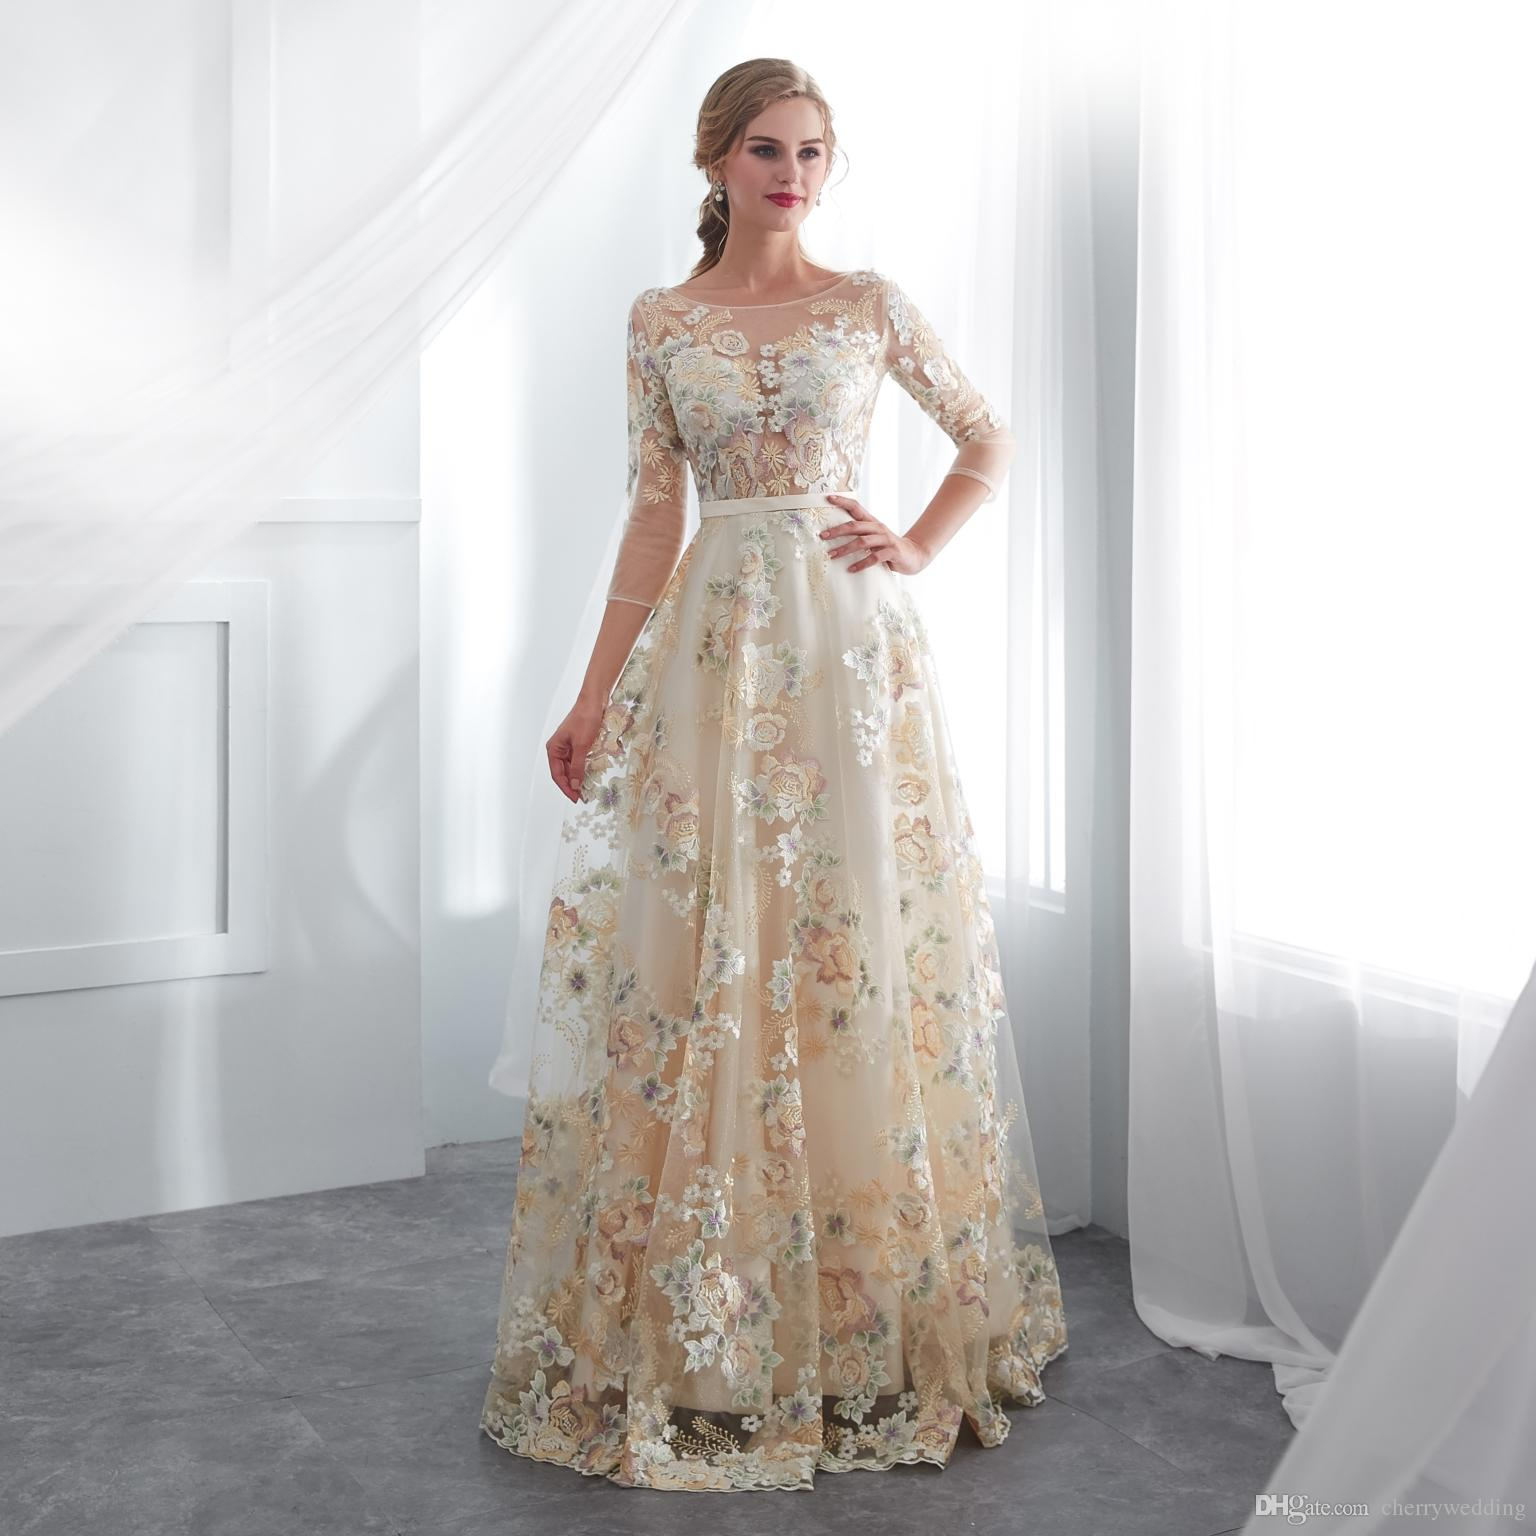 Color Wedding Gown: Colored Wedding Dresses Long Sleeves Lace Romantic Bridal